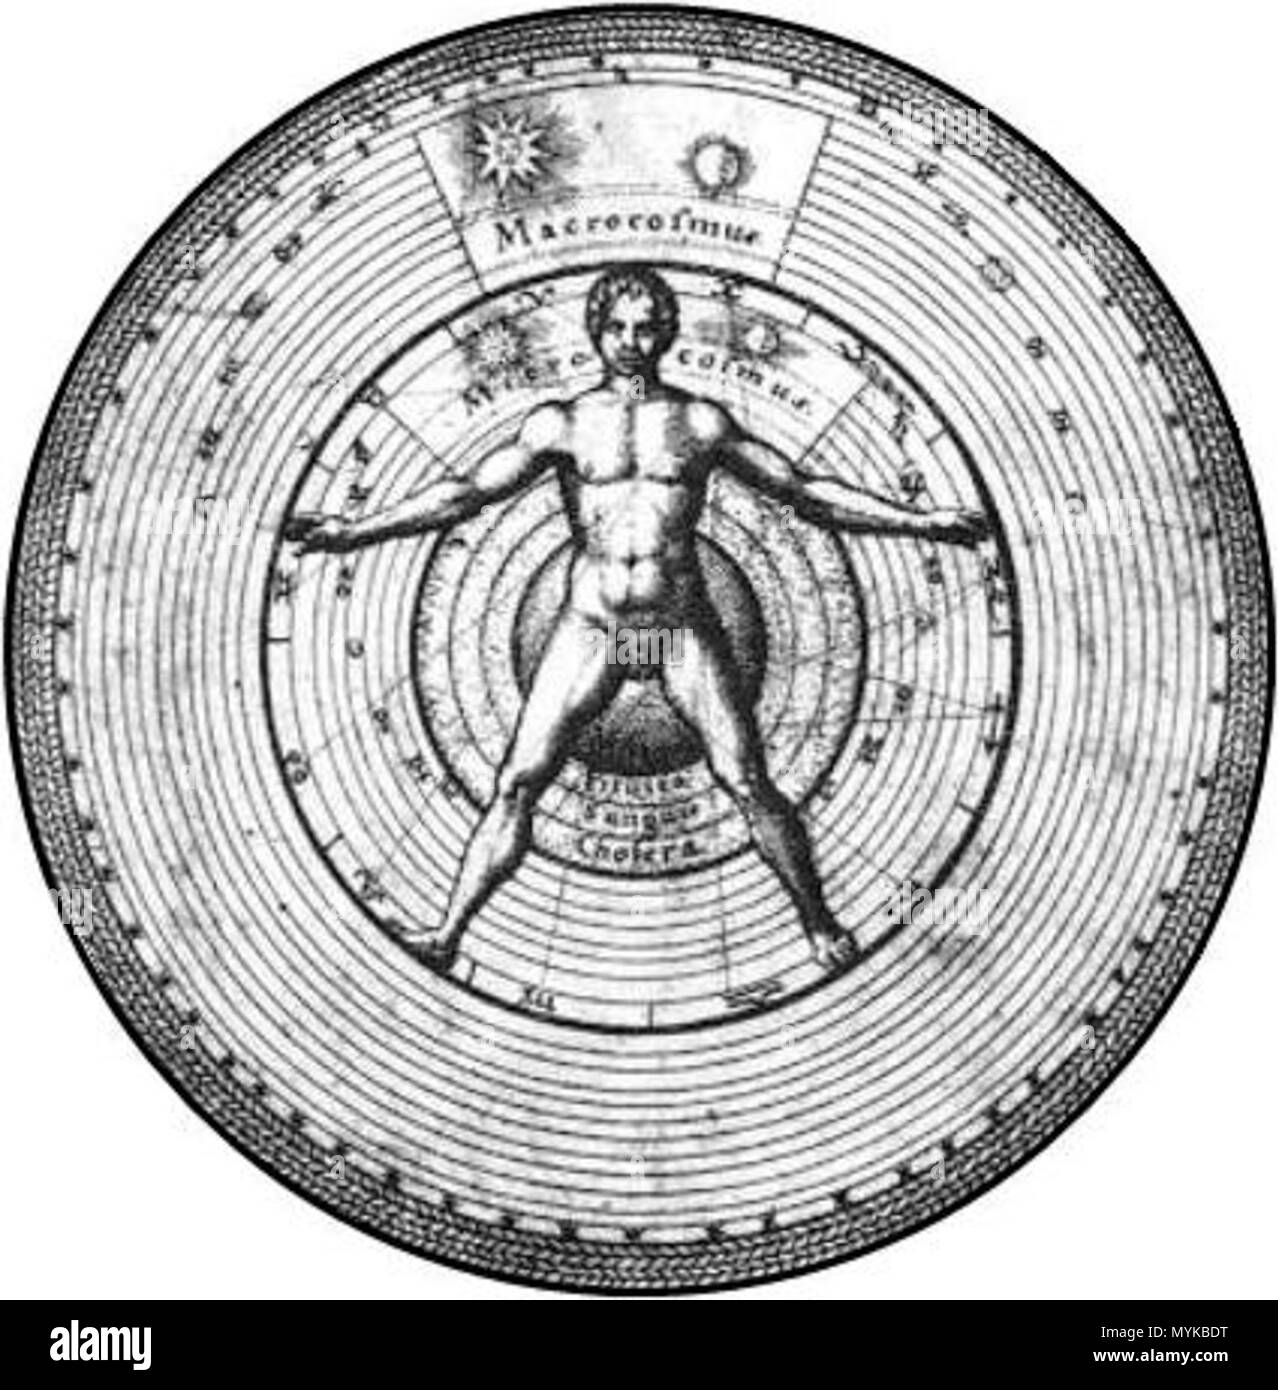 . English: Chart of Micro-cosmos in Stoicism, by Robert Fludd, Utriusque cosmi: Metaphysica, Physica atque Technica Historia, Oppenhemii, 1617 . January 1999. Scroll of Stoicism 362 Micro Cosmo in Achamoth - Stock Image